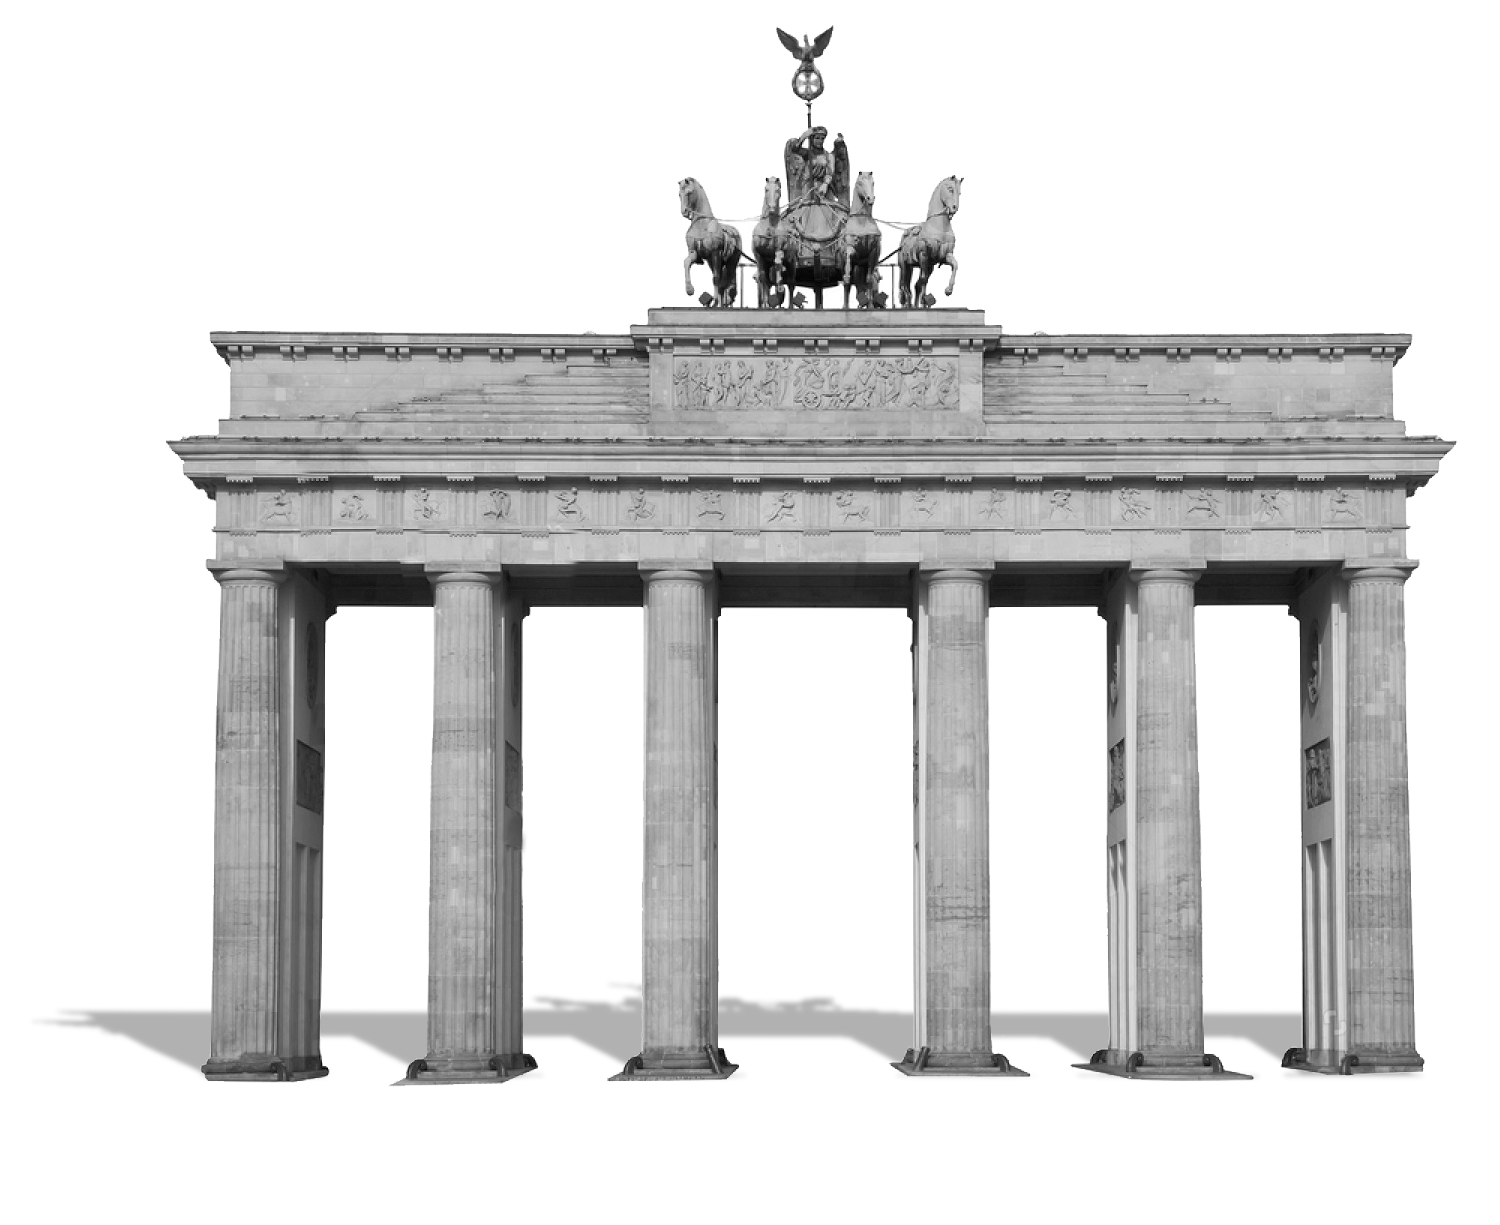 /content/dam/internet/siemens-com/global/company/about/history/application-pages/werner-von-siemens-v15/en/Resources/Images/Werner_von_Siemens/Section_8/brandenburger-tor.png